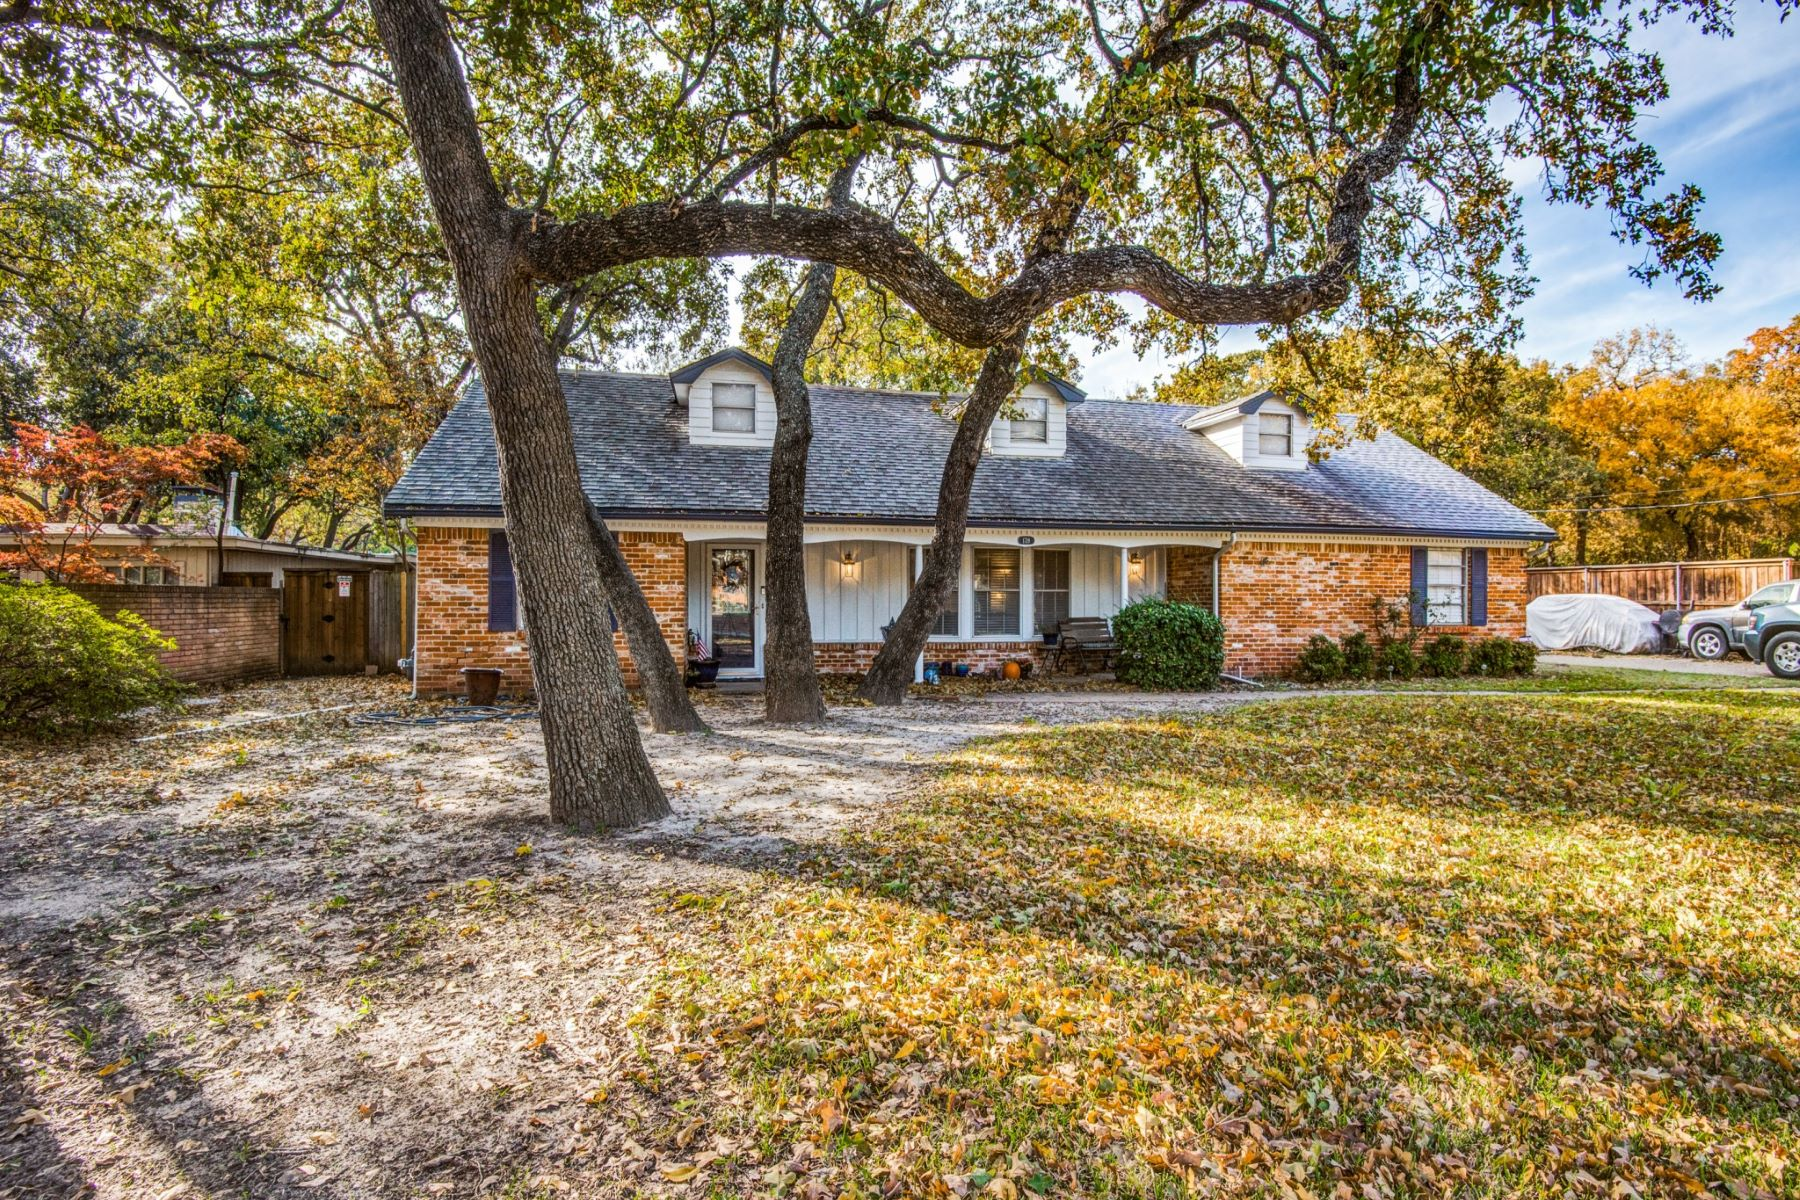 Single Family Homes for Sale at Irving Hospital District Family Home 1719 Sunnybrook Drive Irving, Texas 75061 United States